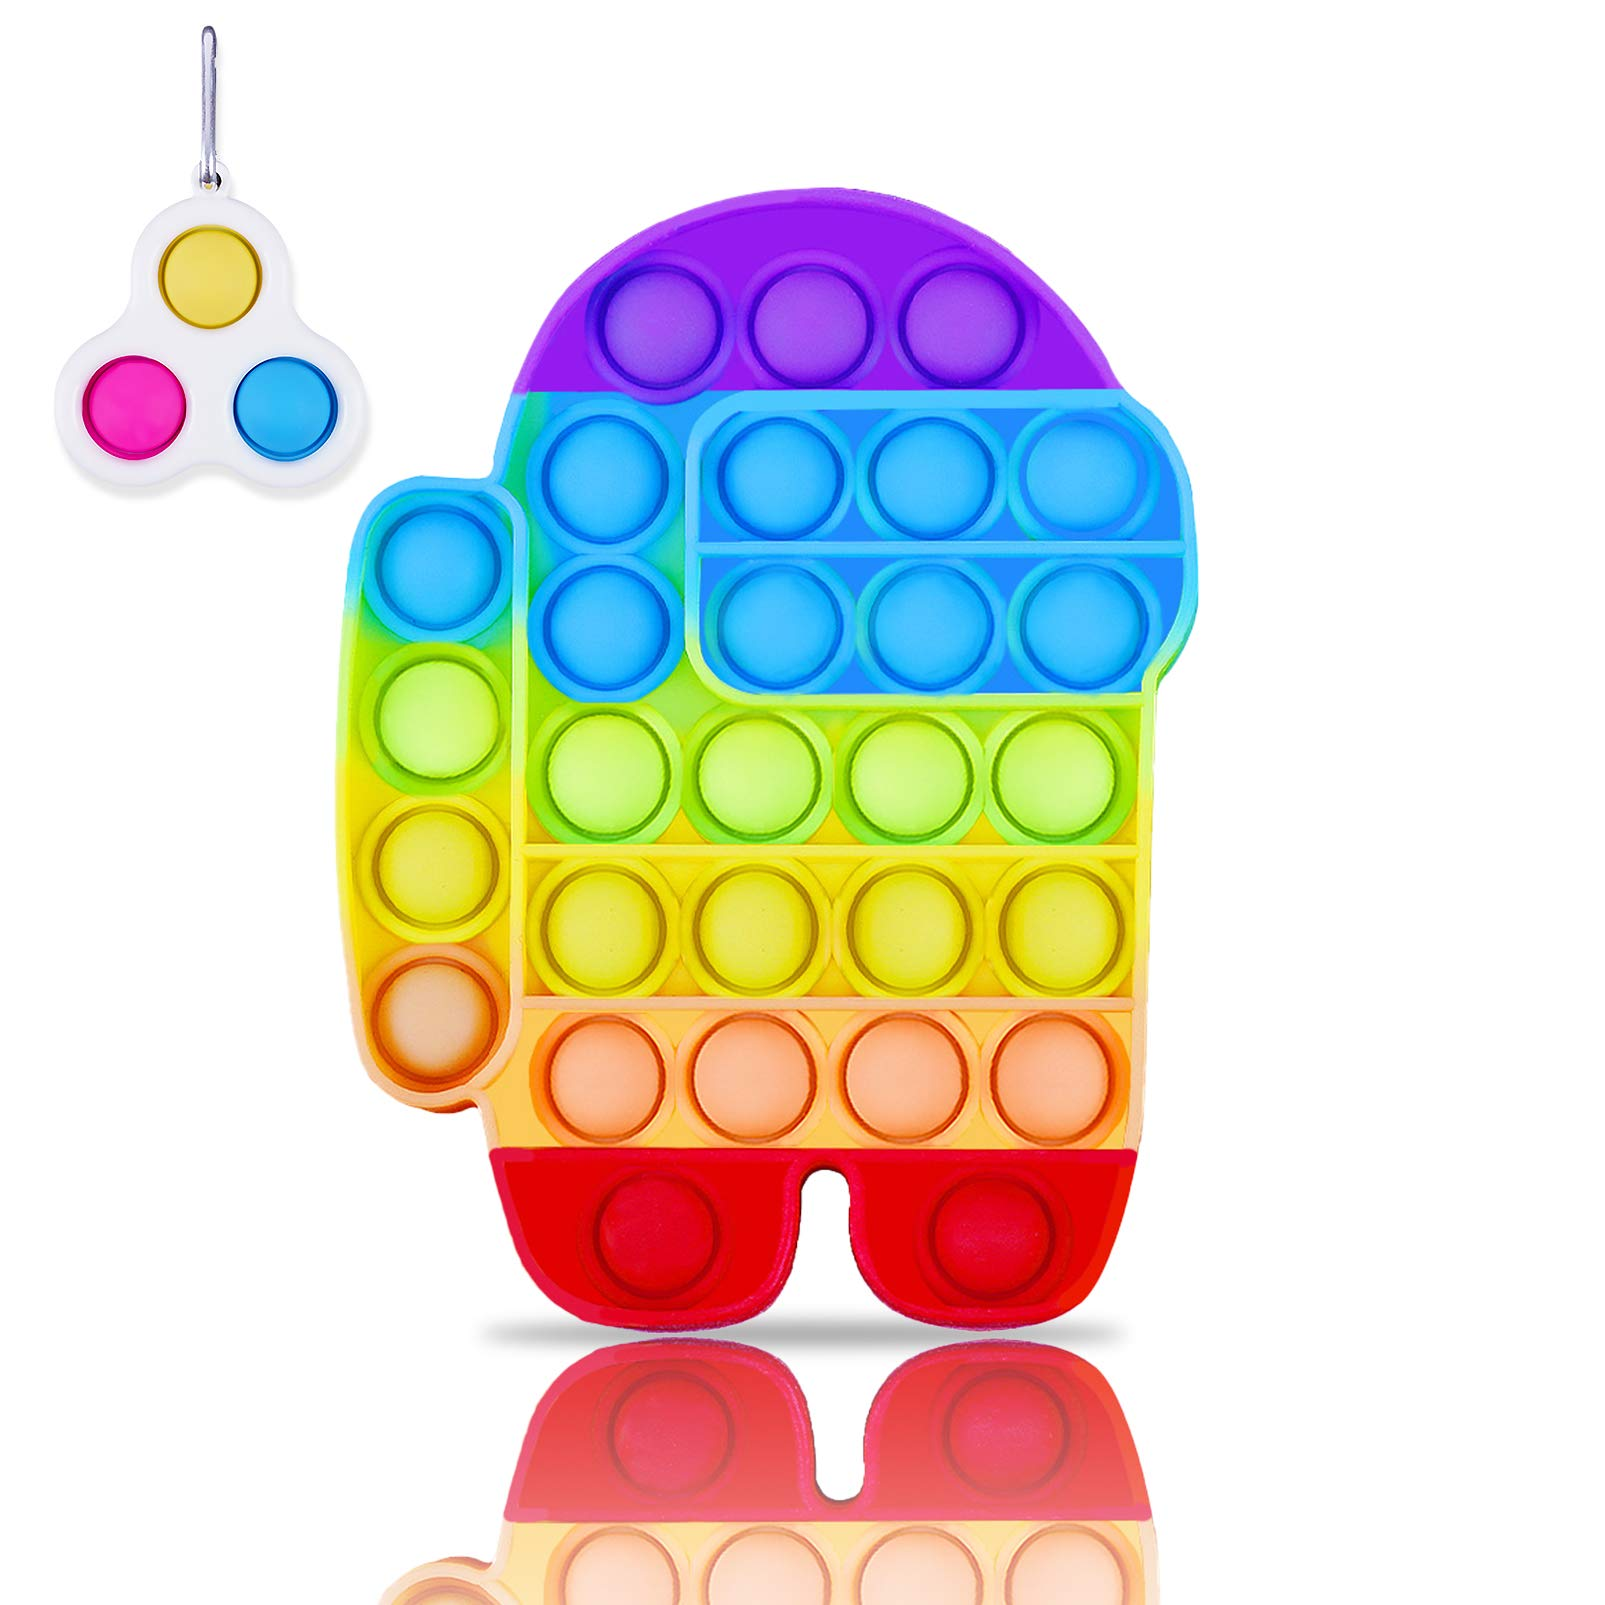 Pop It Rainbow Fidget Toy Sensory Among Us Popit Pack Mini Simple Dimple Popper Keychain Set,Popitz Popet Game Stress Reliever,Gift for Kids Adults Friends Family